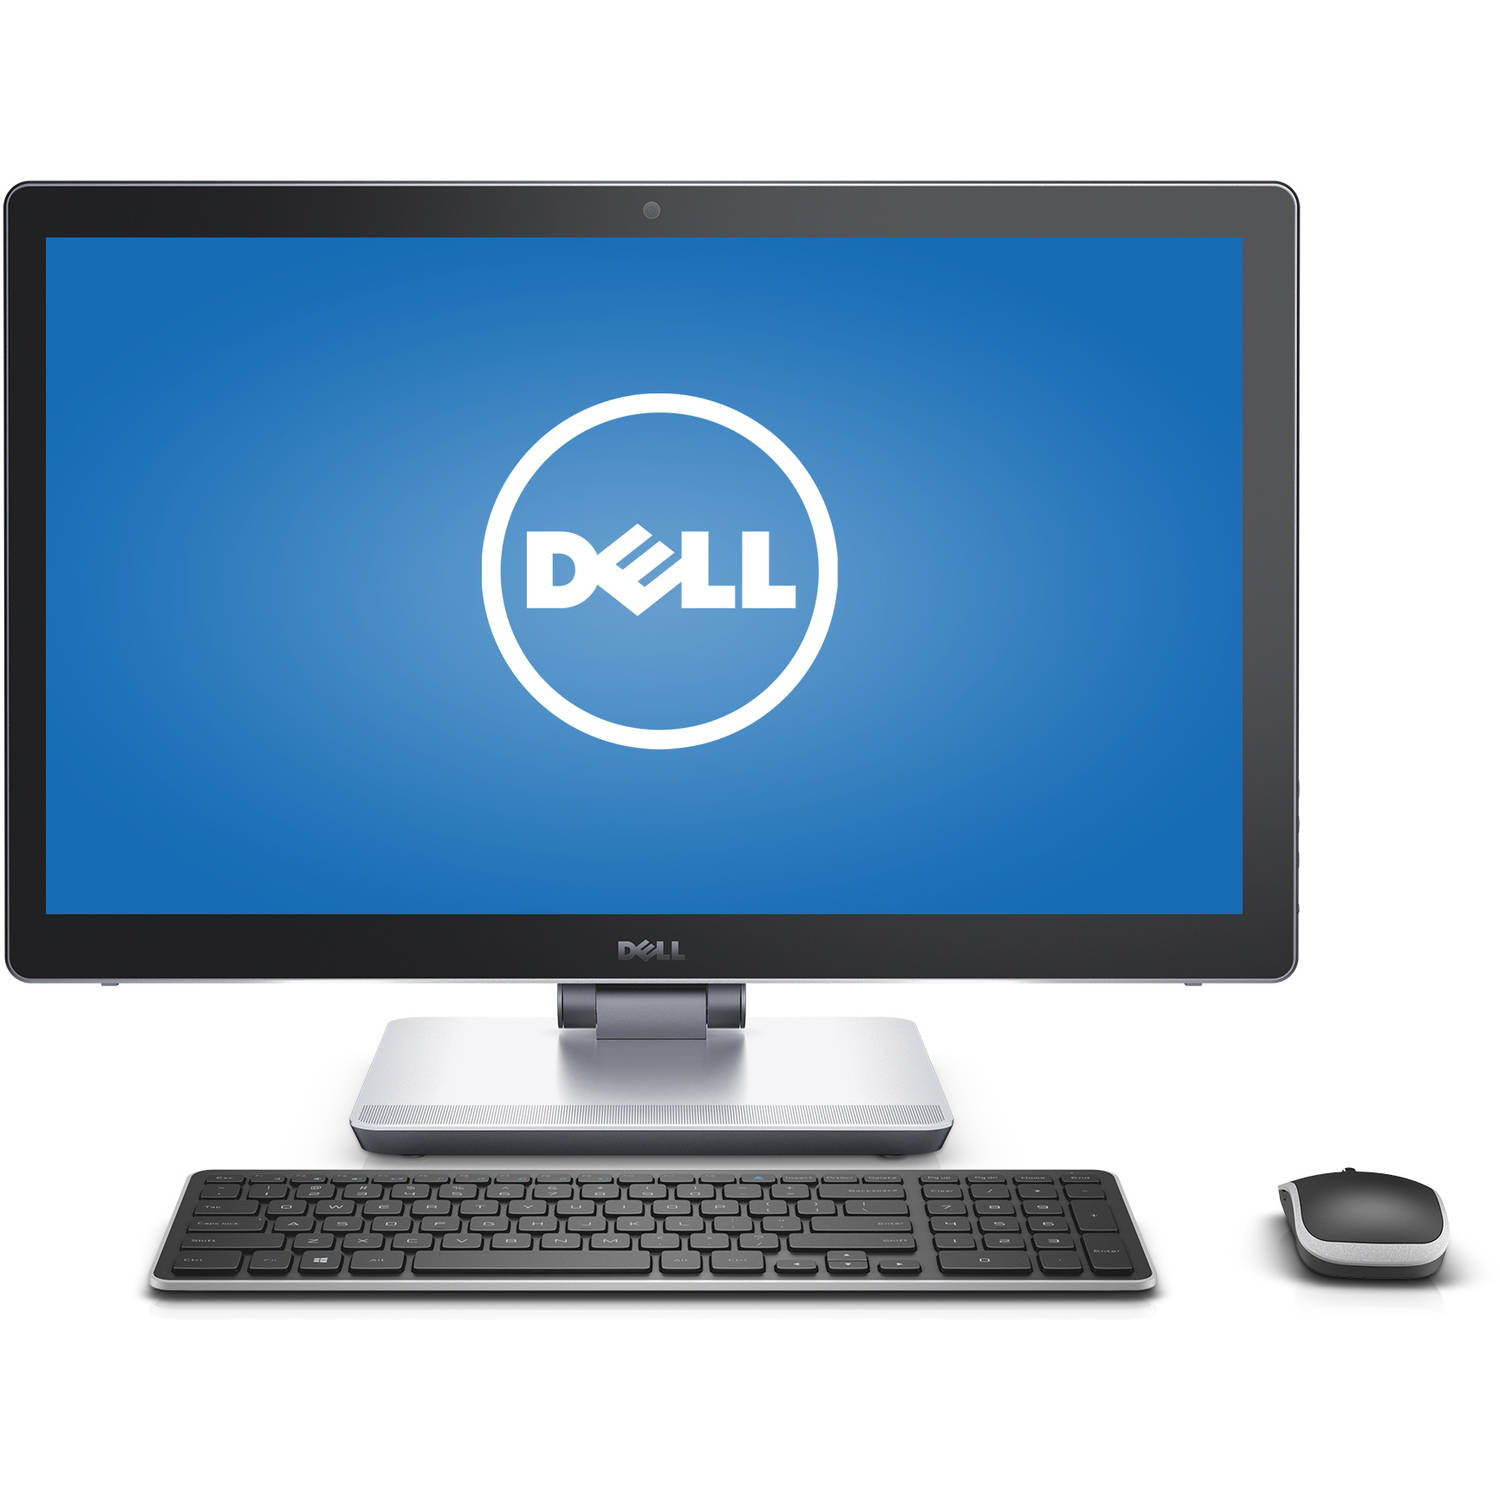 "Dell Inspiron 7459 All-in-One Desktop PC with Intel Core i5-6300HQ Processor, 12GB Memory, 23.8"" Touchscreen, 1TB Hard Drive and Windows 10 Home"